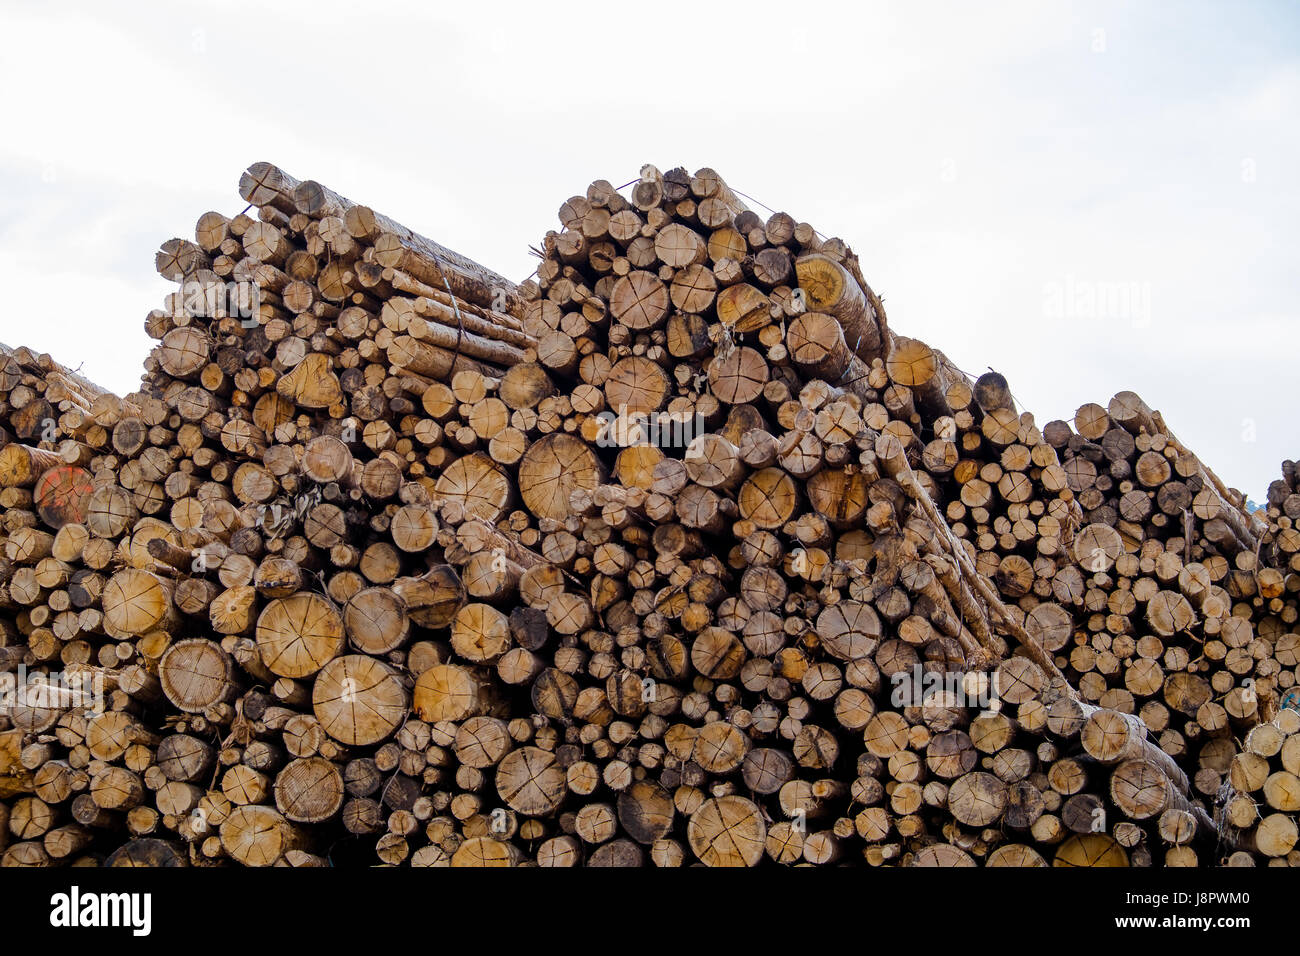 Cut Timber Stack - Stock Image